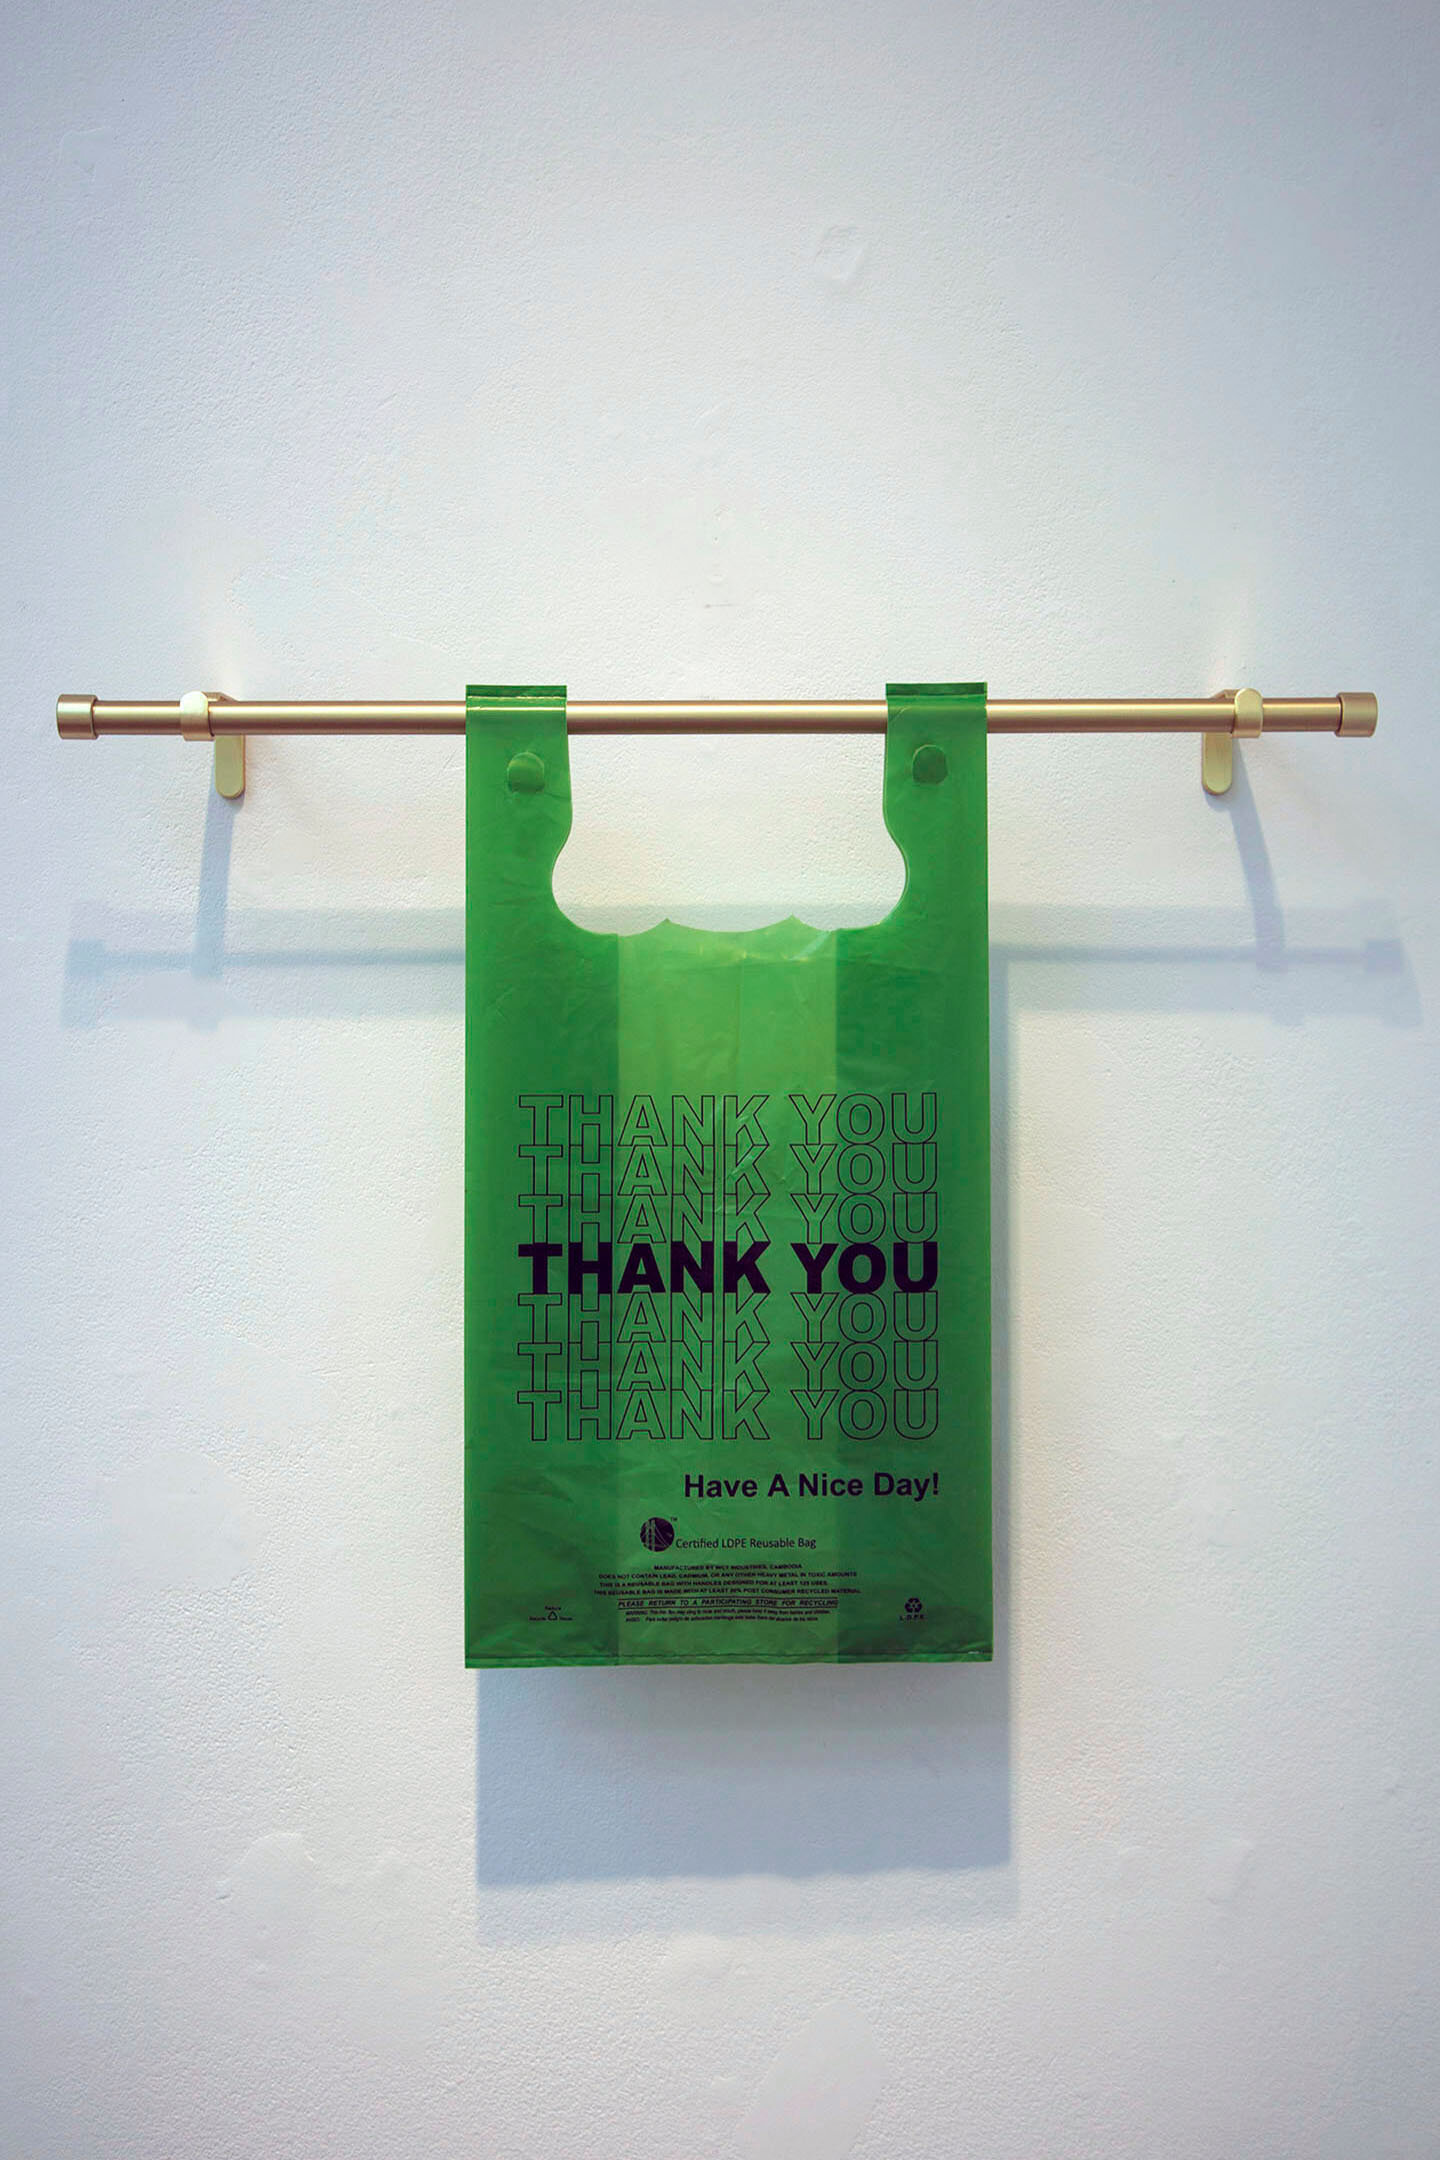 Thank You Thank You Thank You Thank You Thank You Thank You Thank You , 2019, reusable plastic bag, brushed brass curtain rod, 22 x 29½ x 4 inches.